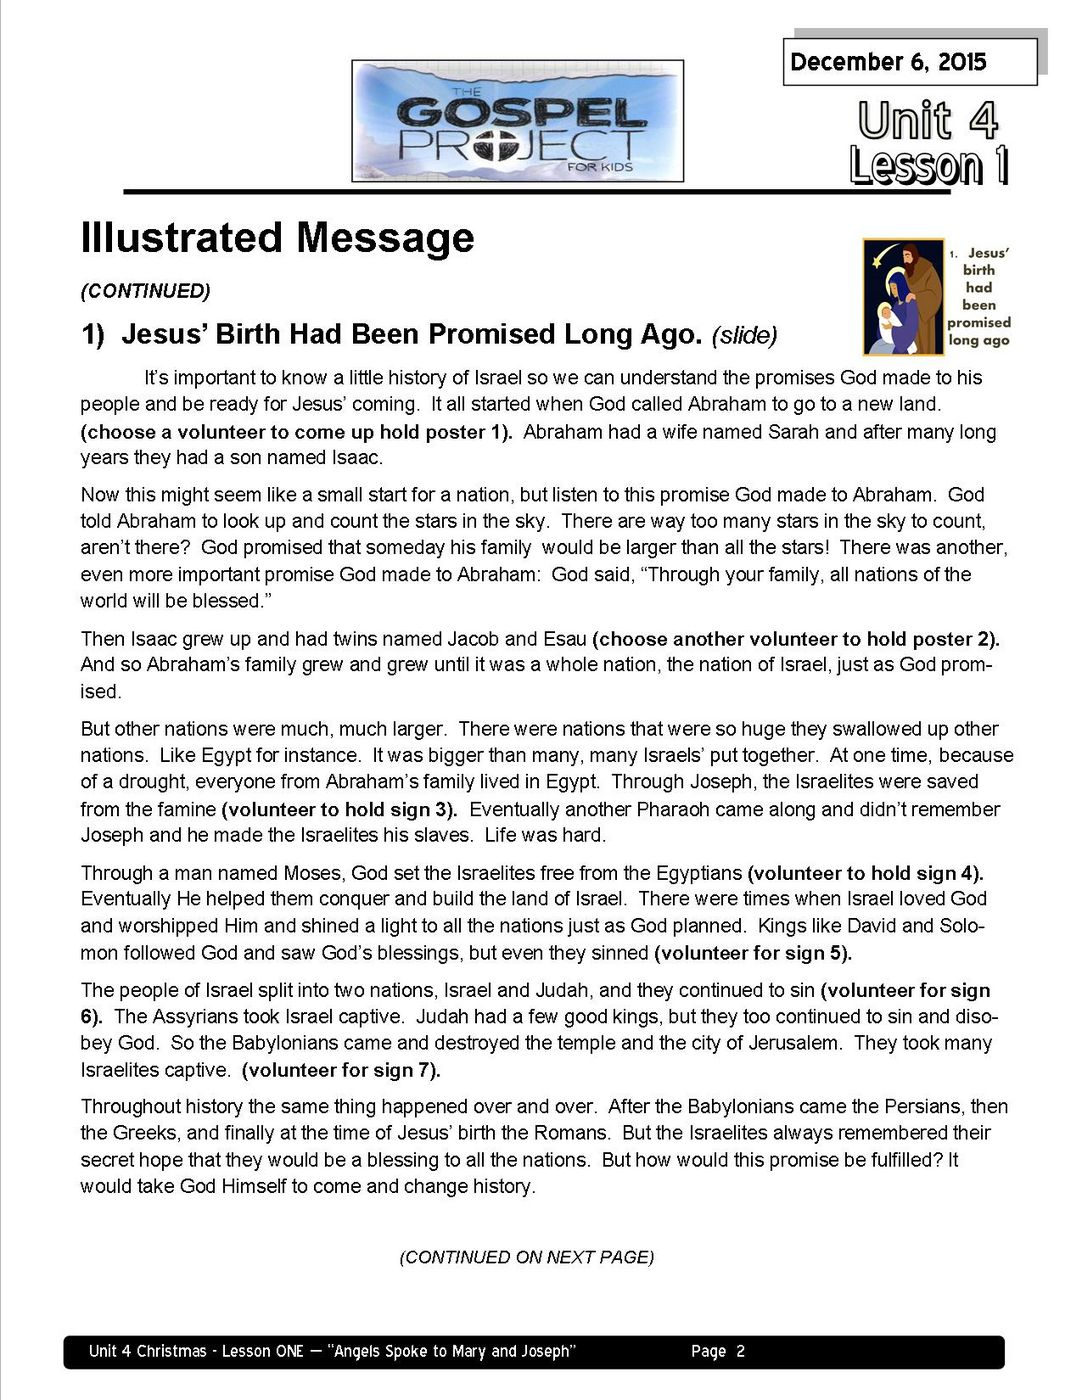 Lead teacher L1 - Angels Spoke to Mary and Joseph page 2